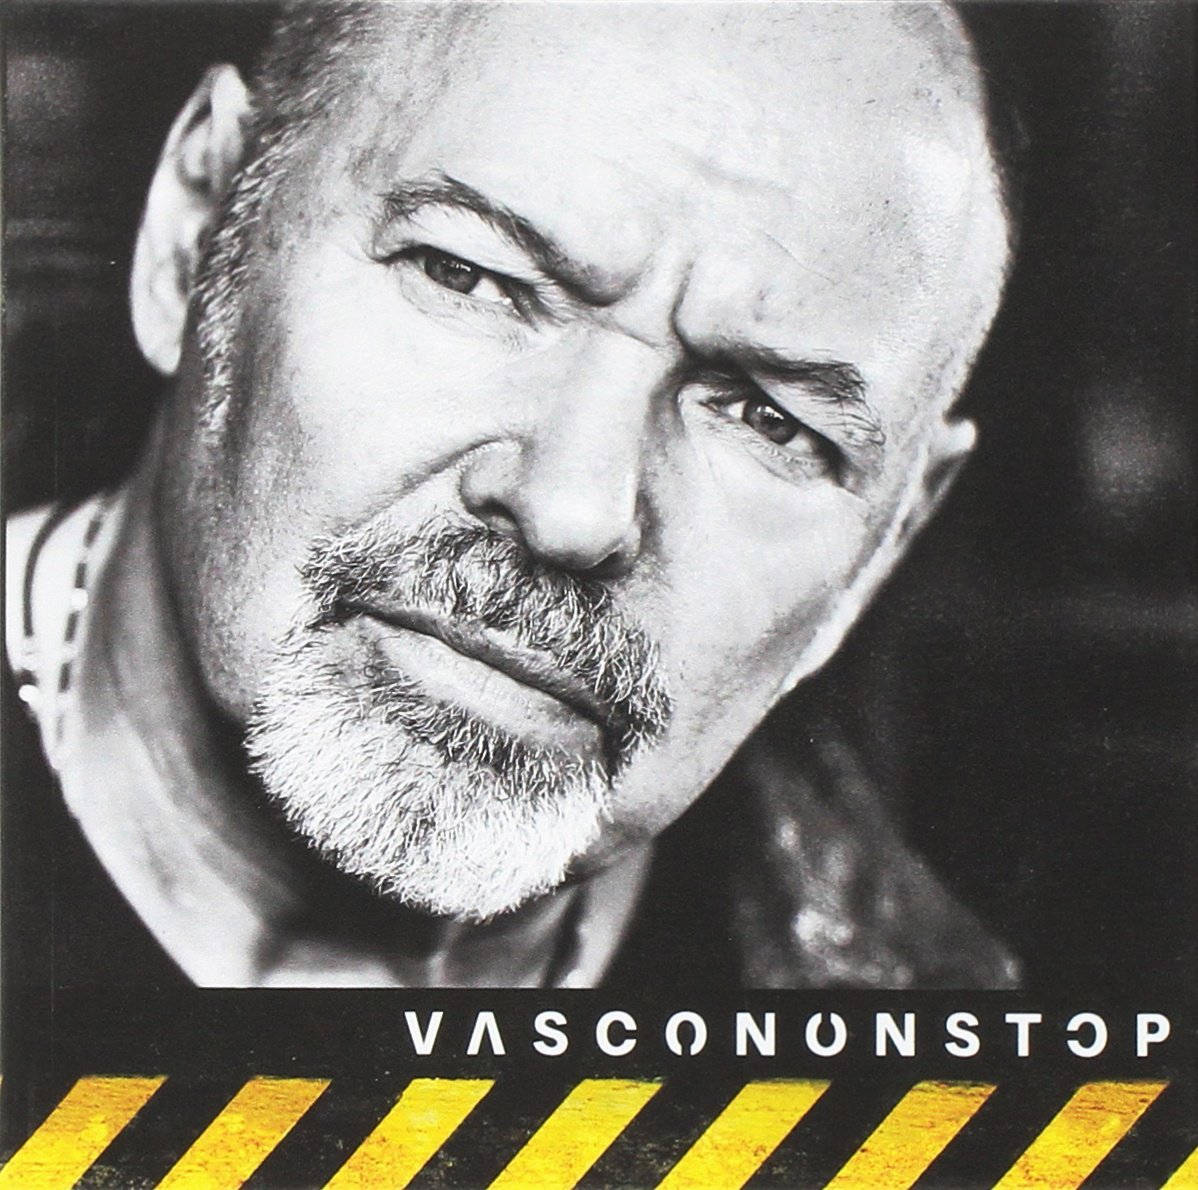 Vasco Rossi Torrent Vasco Rossi Vasco Non Stop 2016